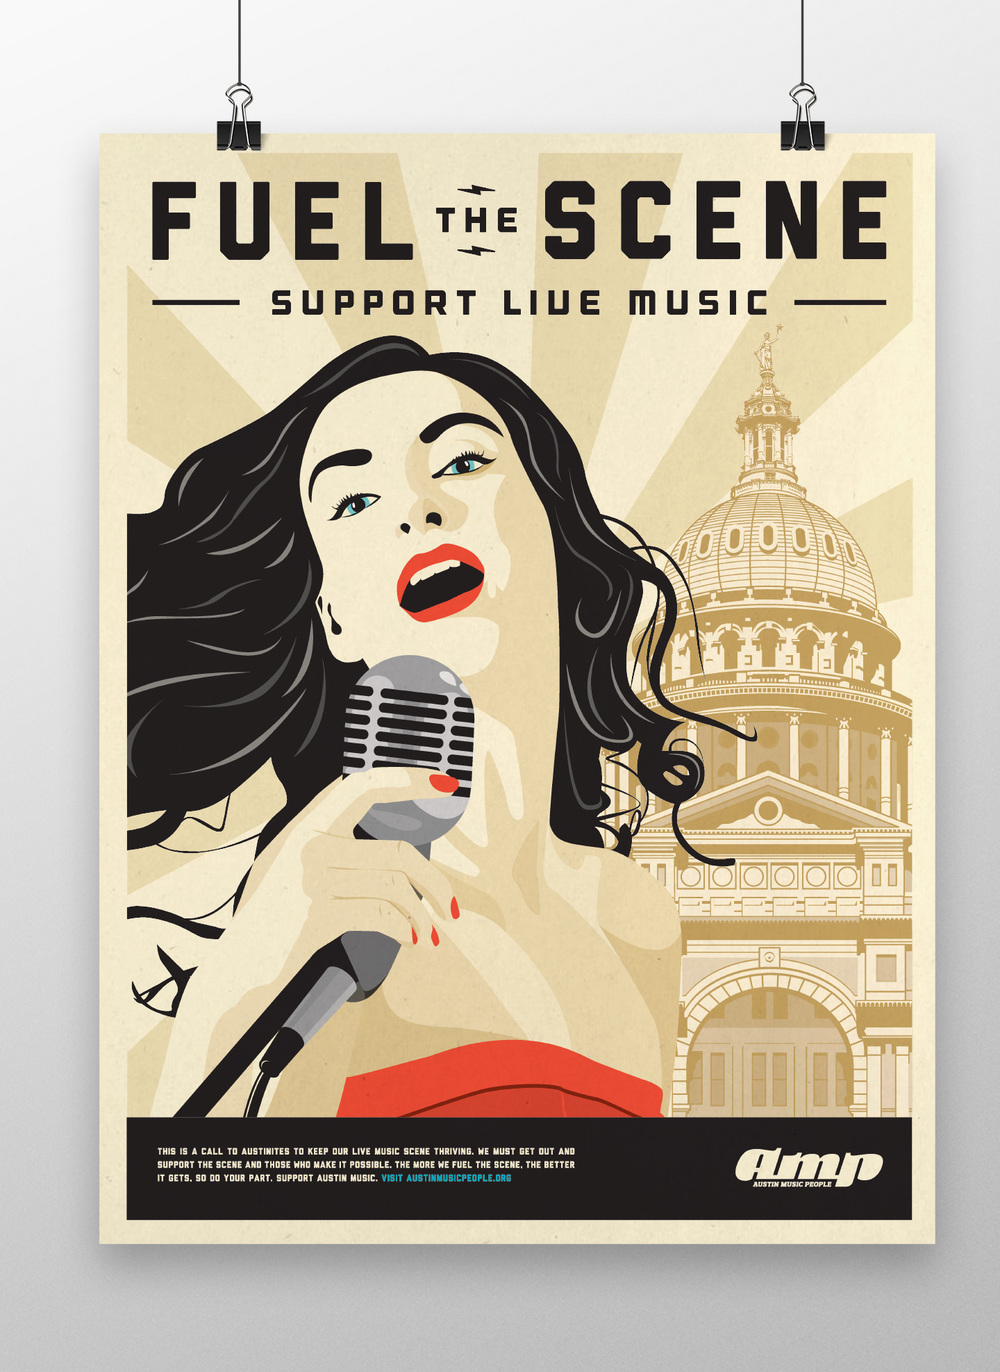 AMP Fuel the Scene Music Poster Illustration & Design.